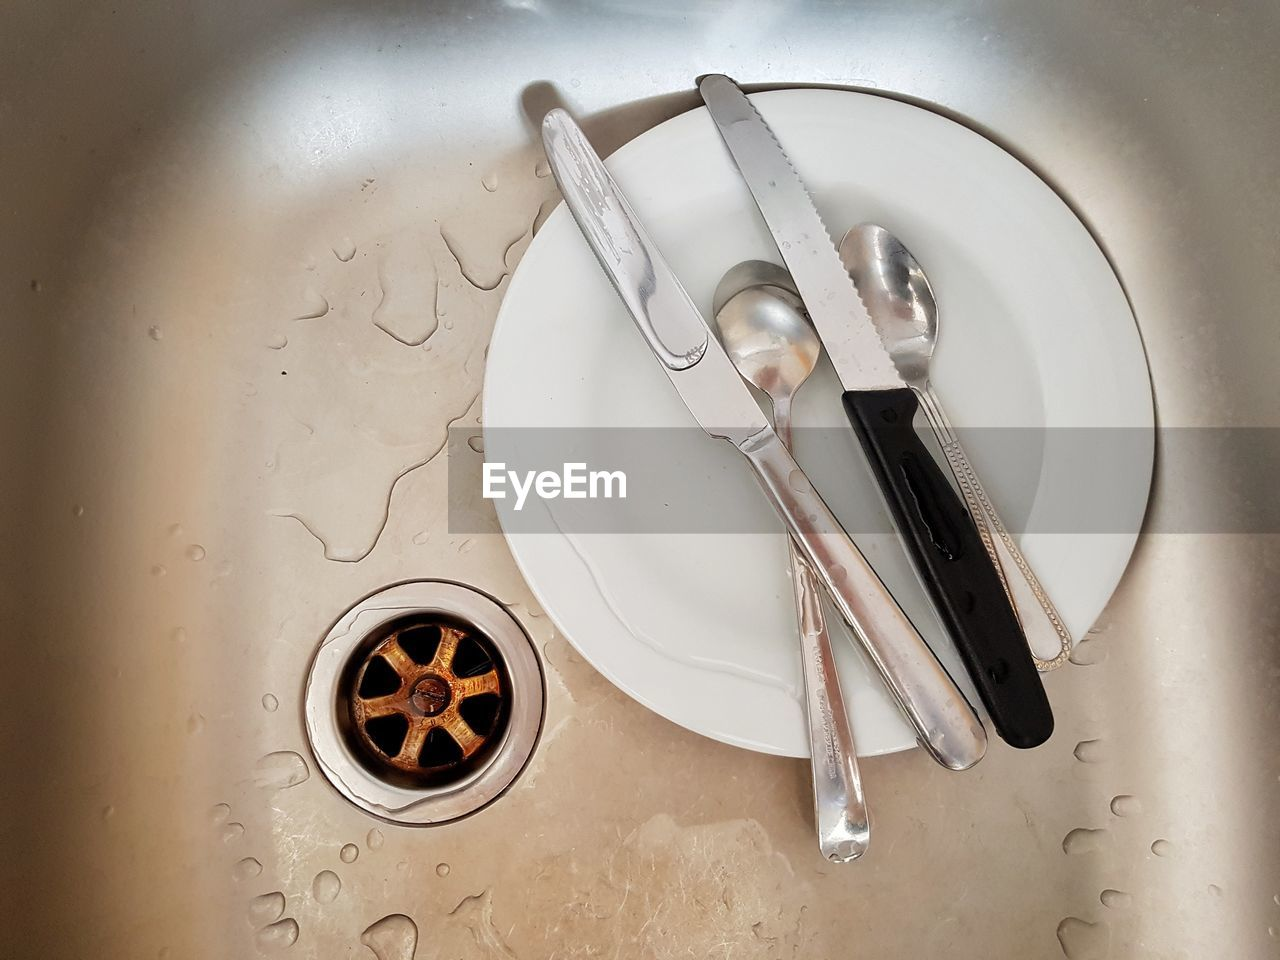 household equipment, eating utensil, kitchen utensil, indoors, fork, sink, knife, table knife, no people, high angle view, plate, metal, still life, directly above, drain, table, dirty, domestic room, dirt, water, crockery, silver colored